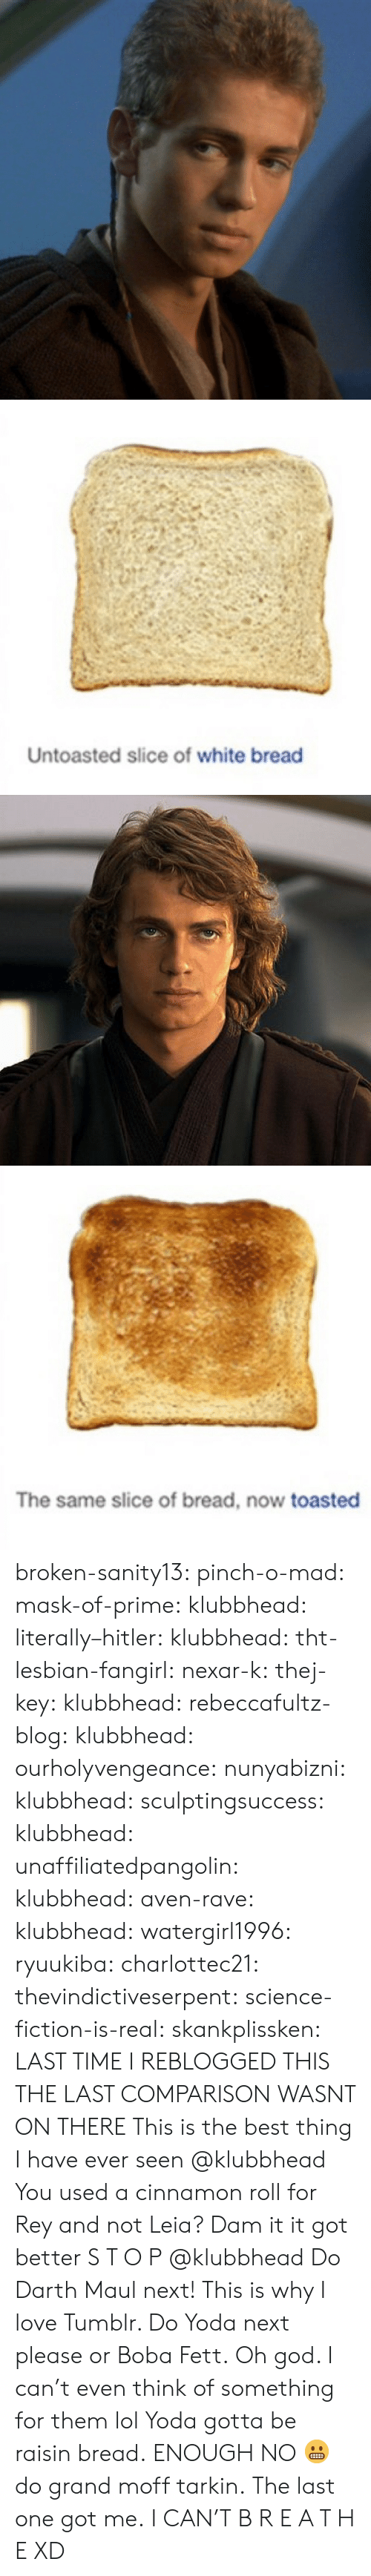 Rave: Untoasted slice of white bread   The same slice of bread, now toasted broken-sanity13:  pinch-o-mad:   mask-of-prime:  klubbhead:  literally–hitler:  klubbhead:  tht-lesbian-fangirl:  nexar-k:  thej-key:  klubbhead:  rebeccafultz-blog:   klubbhead:  ourholyvengeance:  nunyabizni:  klubbhead:  sculptingsuccess:  klubbhead:   unaffiliatedpangolin:  klubbhead:  aven-rave:  klubbhead:   watergirl1996:  ryuukiba:  charlottec21:  thevindictiveserpent:  science-fiction-is-real:  skankplissken:                   LAST TIME I REBLOGGED THIS THE LAST COMPARISON WASNT ON THERE    This is the best thing I have ever seen   @klubbhead You used a cinnamon roll for Rey and not Leia?    Dam it it got better   S T O P  @klubbhead Do Darth Maul next!   This is why I love Tumblr. Do Yoda next please or Boba Fett.   Oh god. I can't even think of something for them lol  Yoda gotta be raisin bread.   ENOUGH   NO 😬 do grand moff tarkin.     The last one got me.   I CAN'T  B R E A T H E  XD